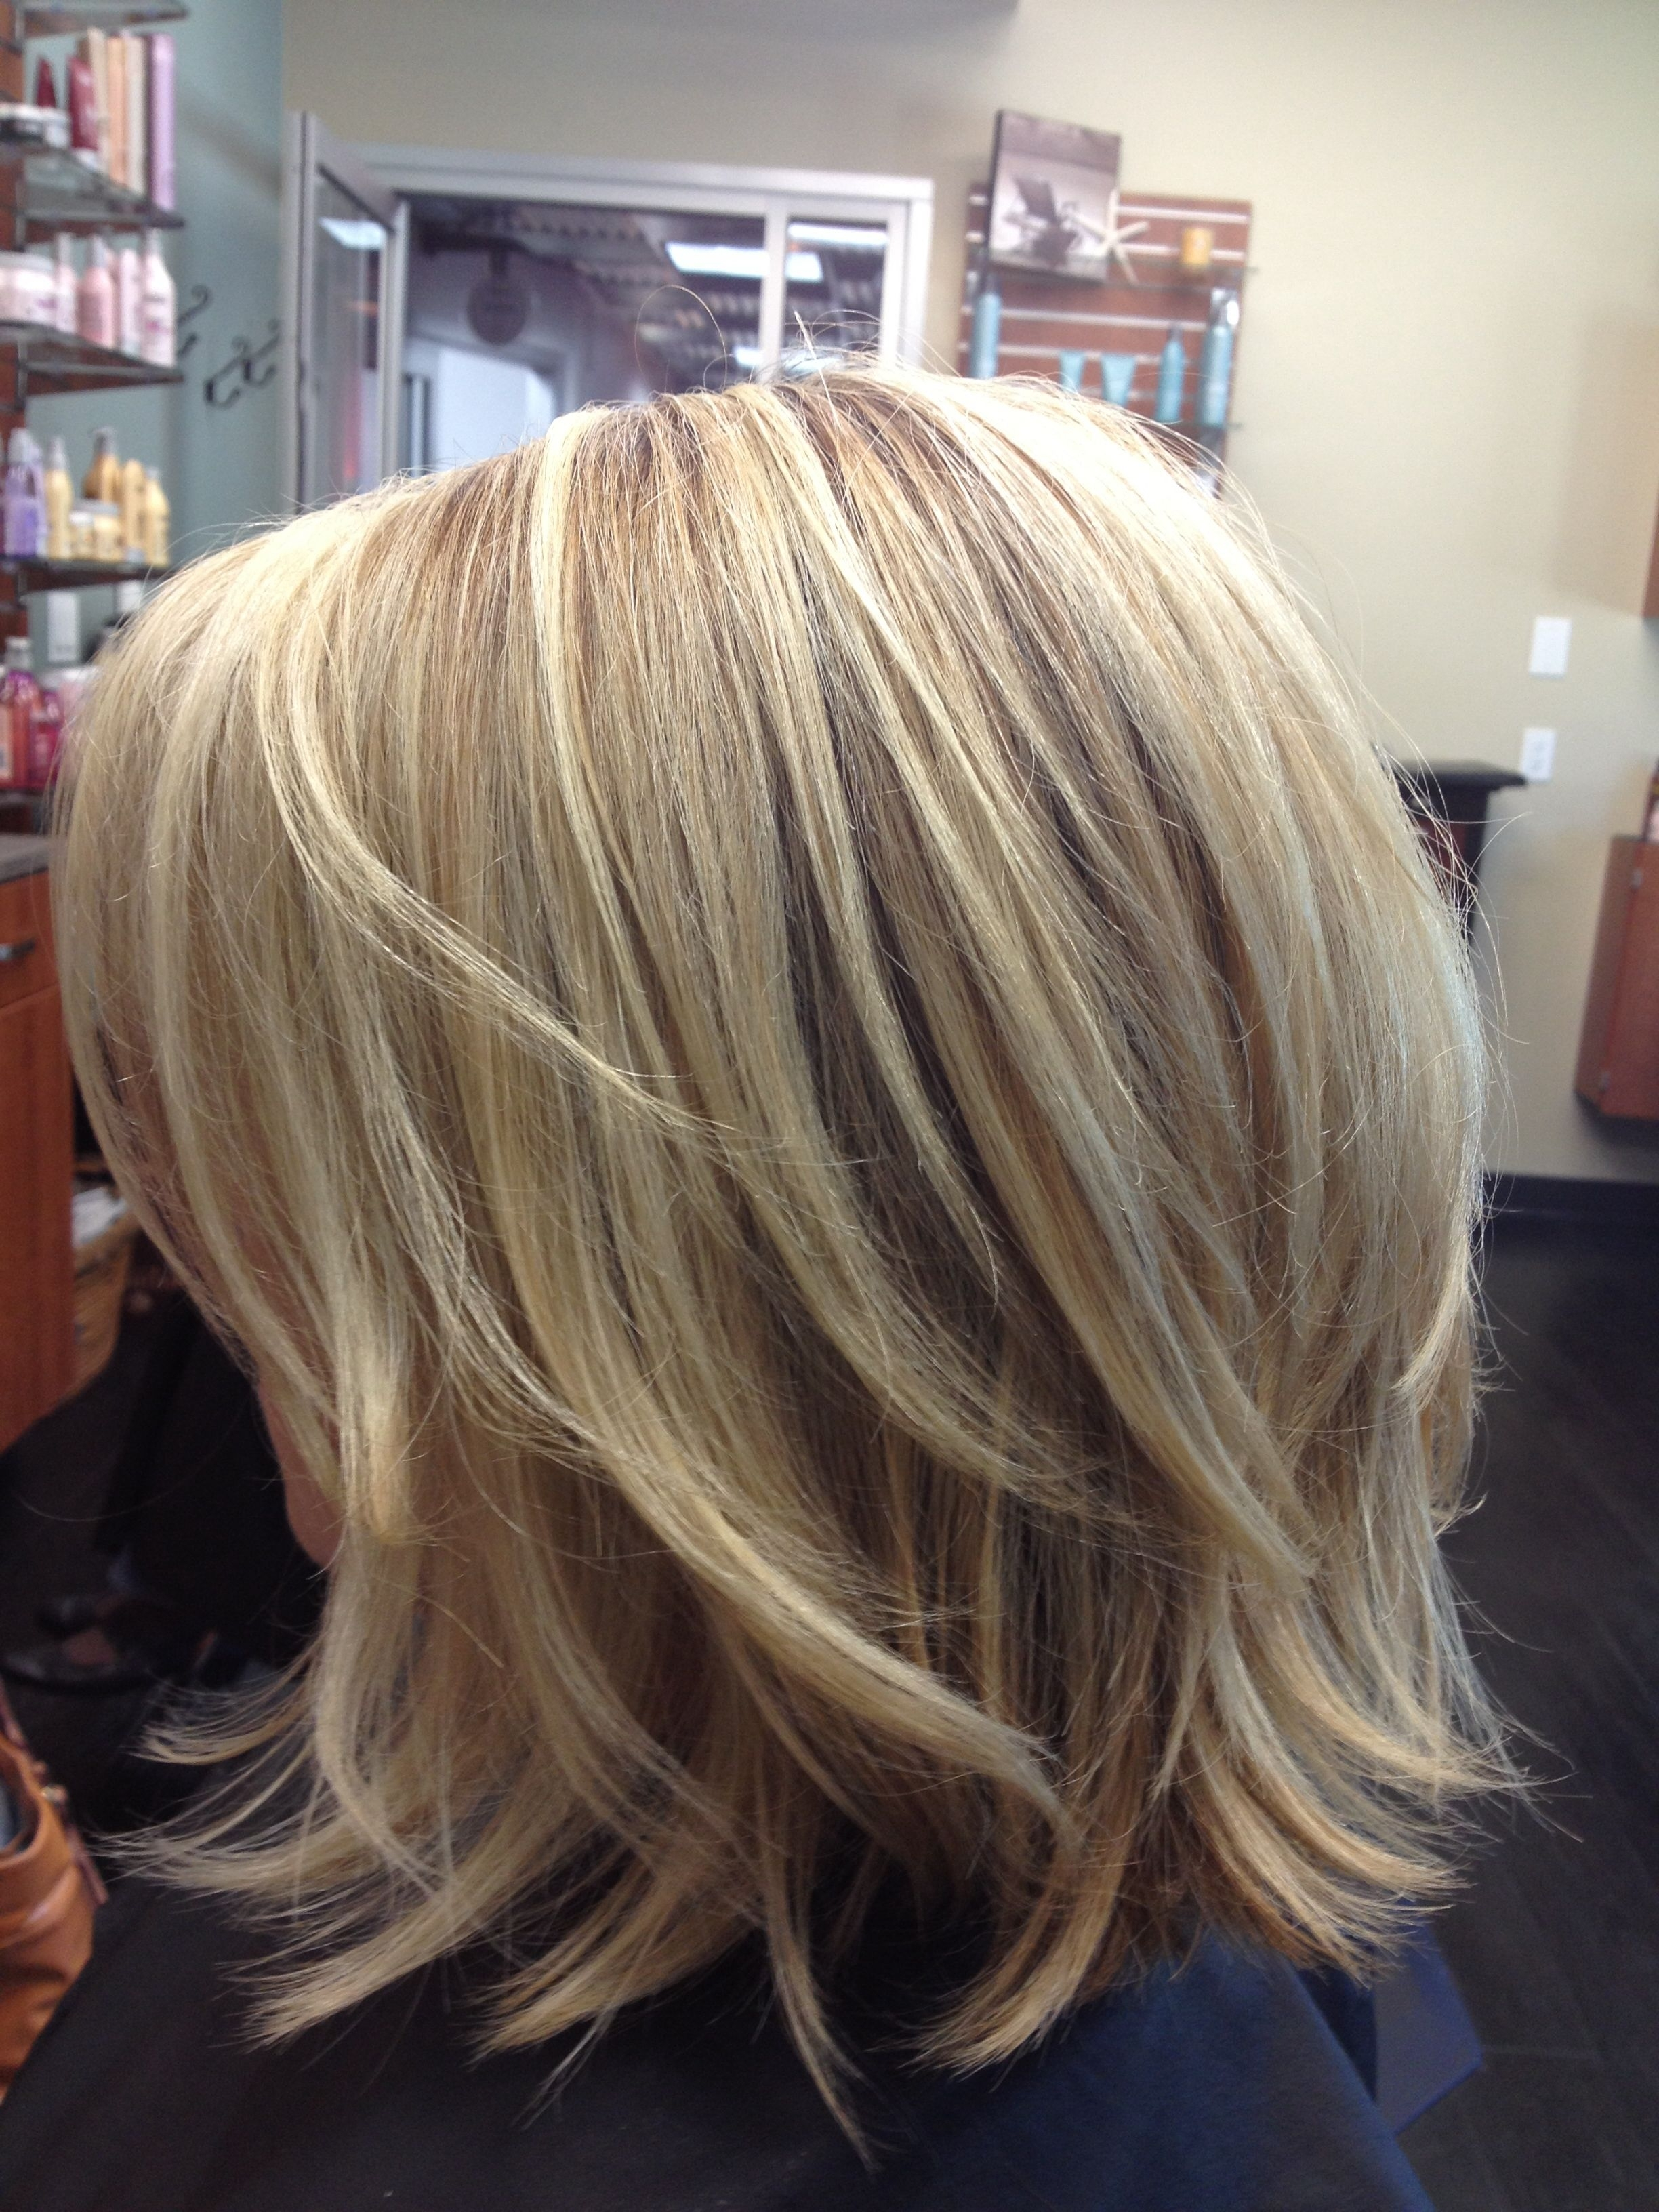 14 Trendy Medium Layered Hairstyles In (View 3 of 20)